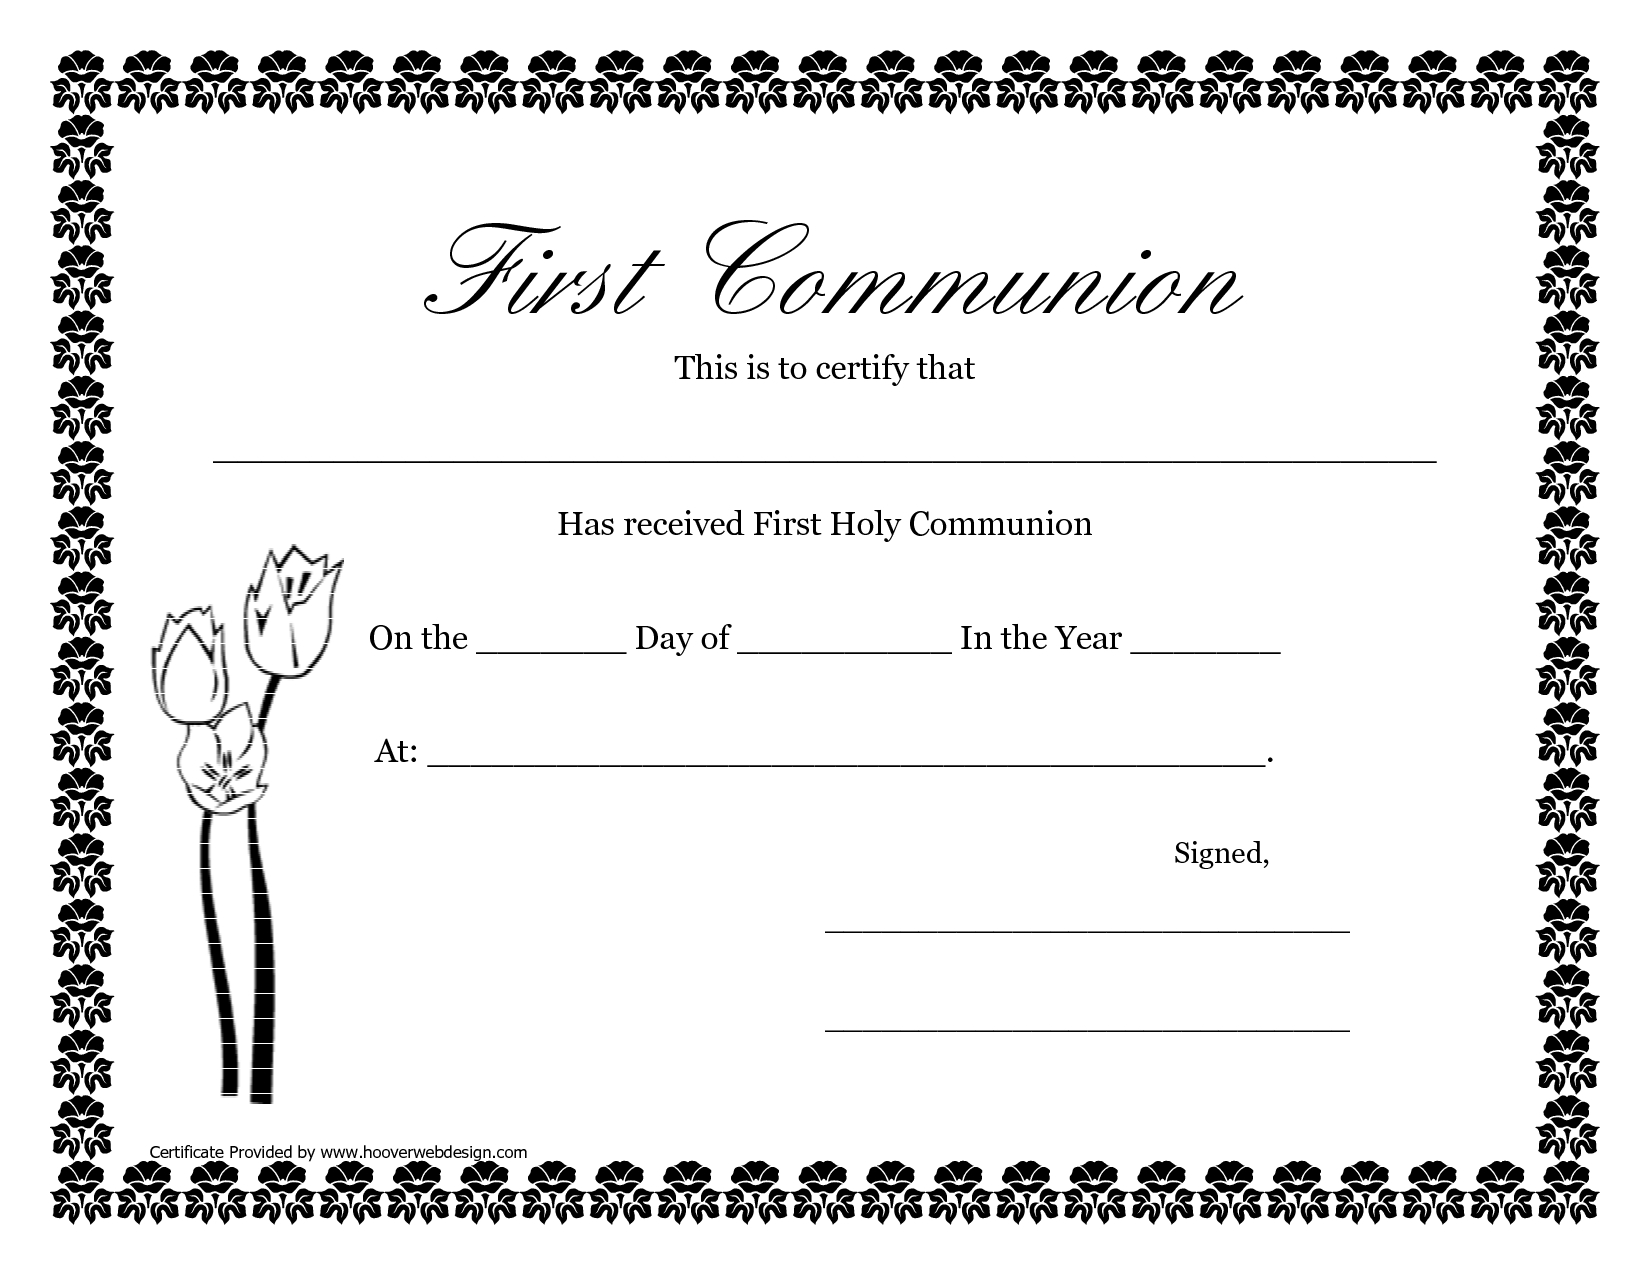 First Communion Banner Templates | Printable First Communion Regarding Free Printable First Communion Banner Templates